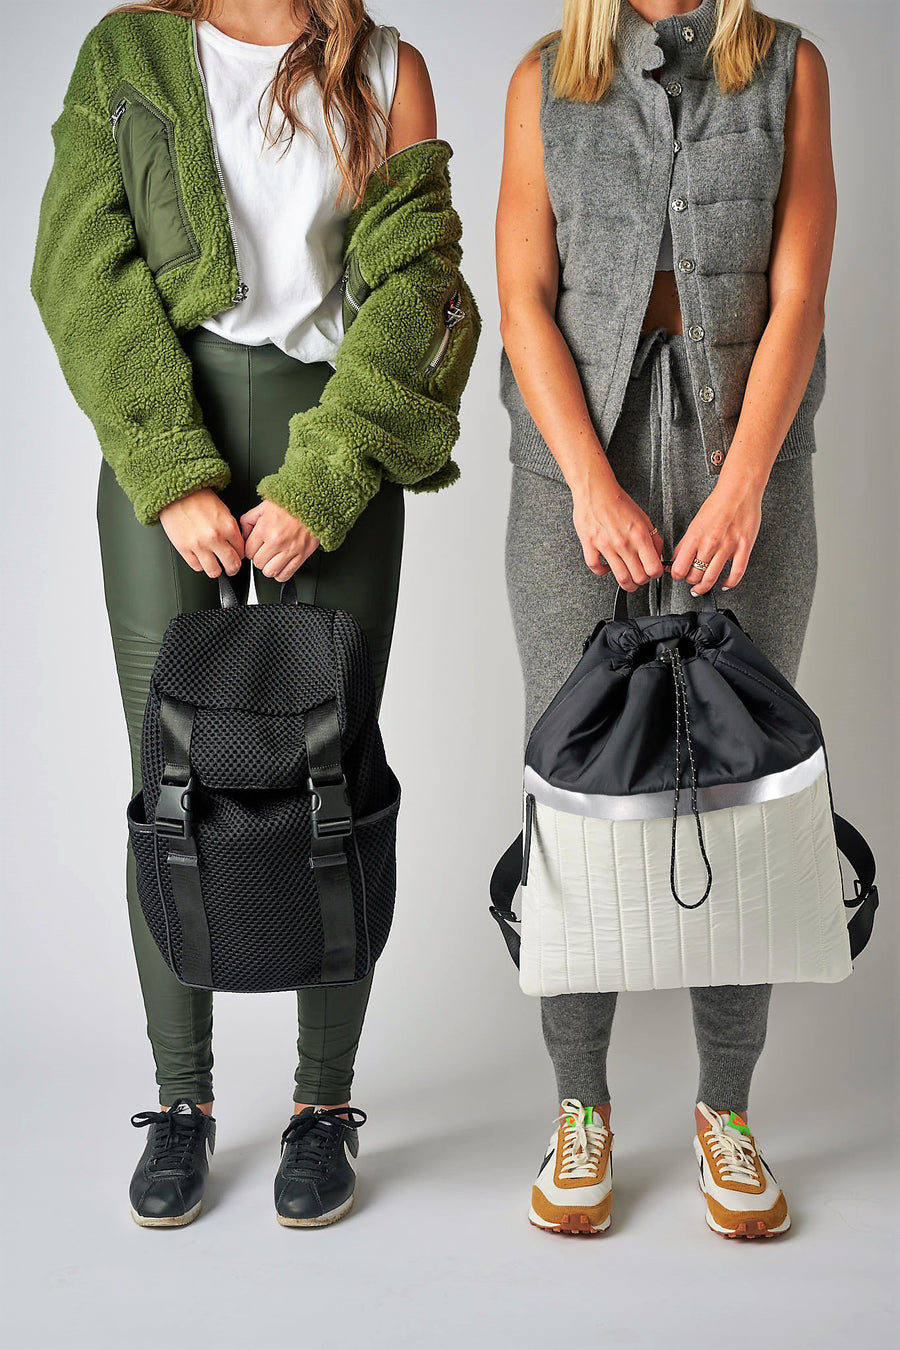 two people holding backpacks